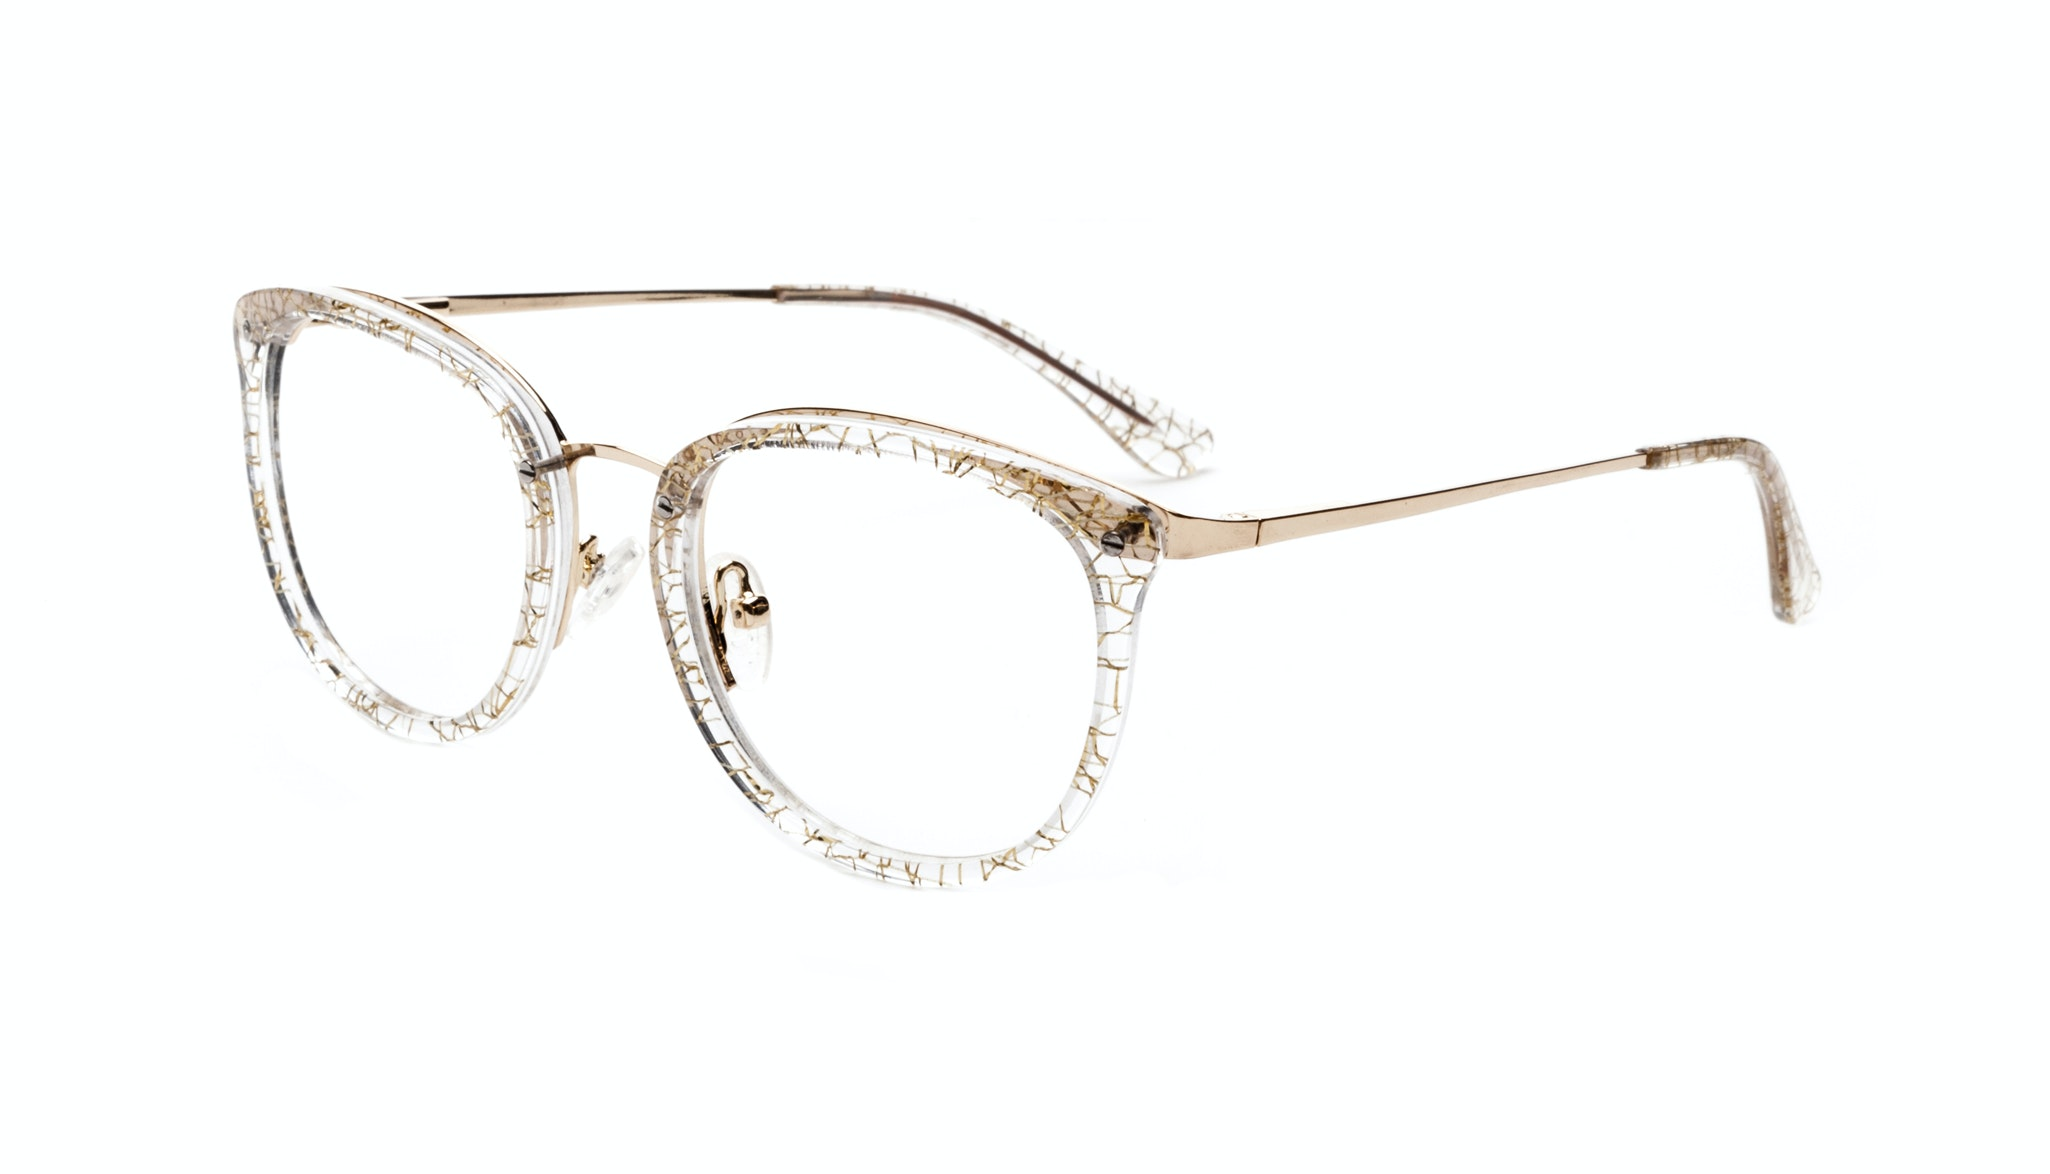 Affordable Fashion Glasses Square Round Eyeglasses Women Amaze Champagne Tilt